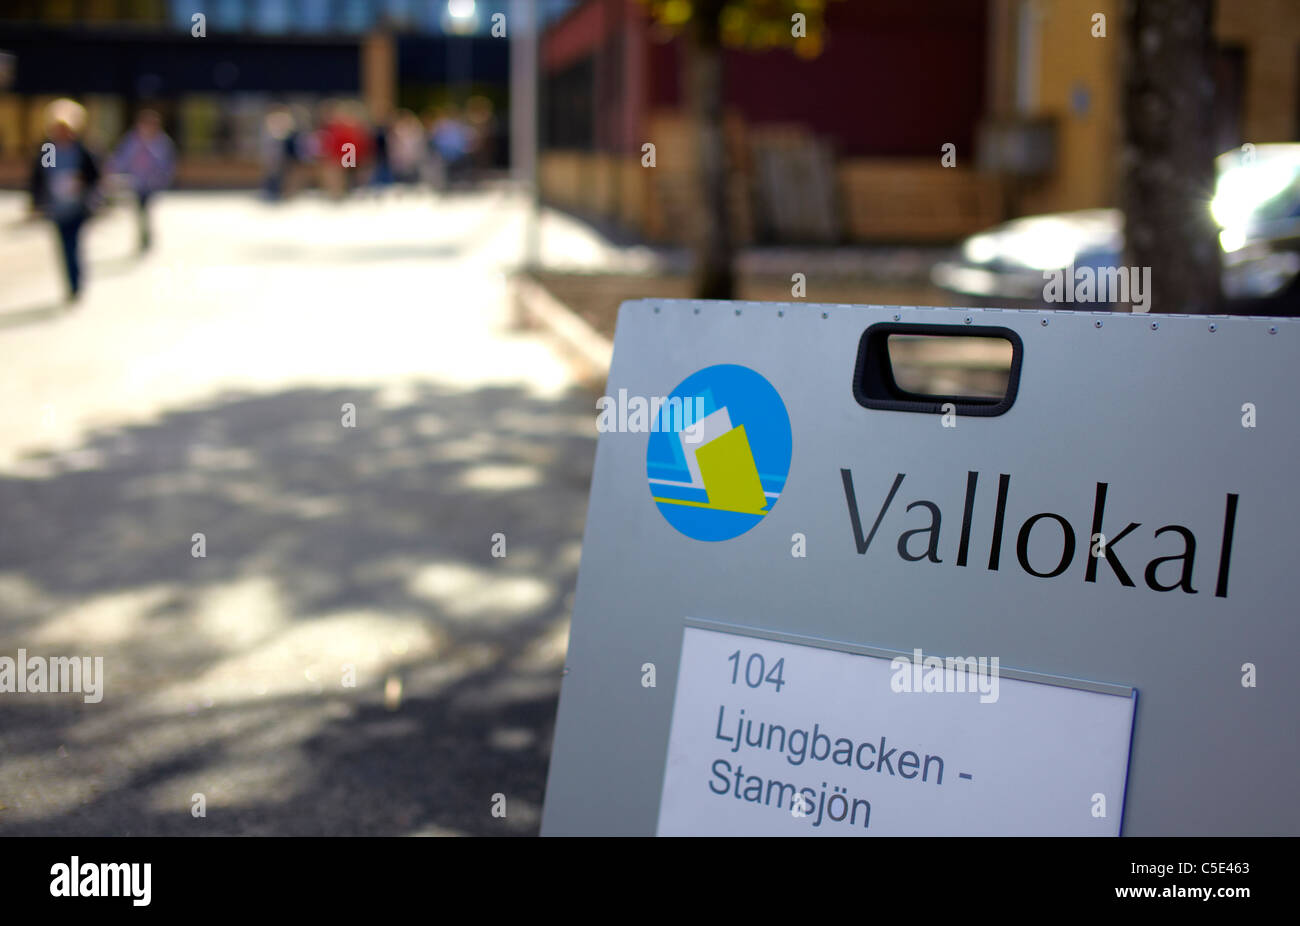 Close-up of polling signboard against the blurred street - Stock Image